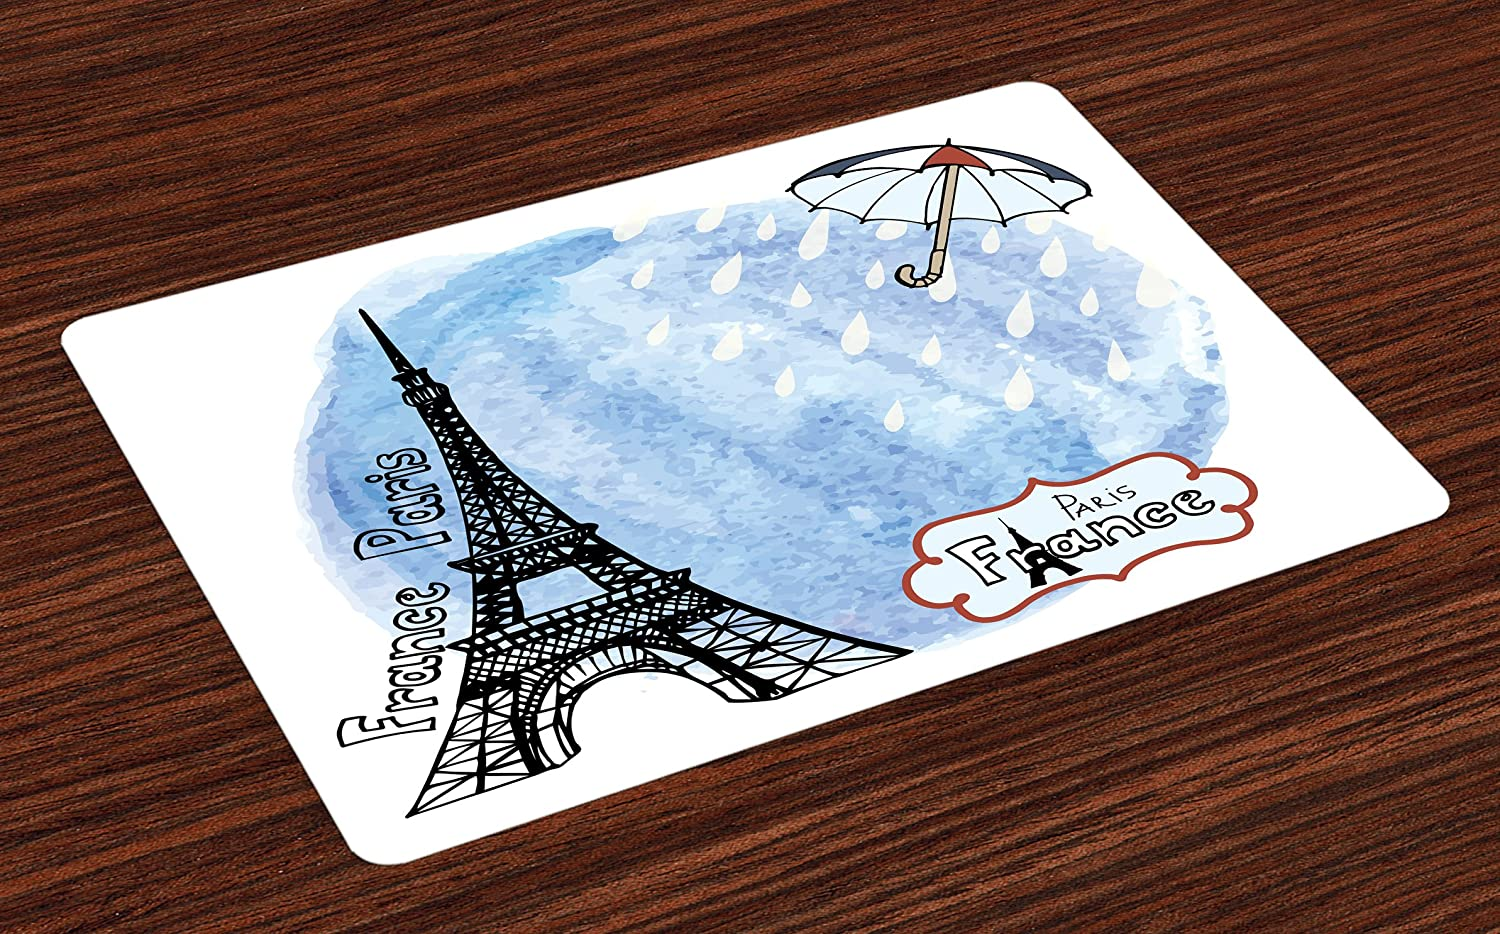 Ambesonne Eiffel Tower Place Mats Set of 4, Surreal Watercolors Paint of Eiffel Tower with Rain Splashes Paris Culture Landmark, Washable Fabric Placemats for Dining Room Kitchen Table Decor, Blue